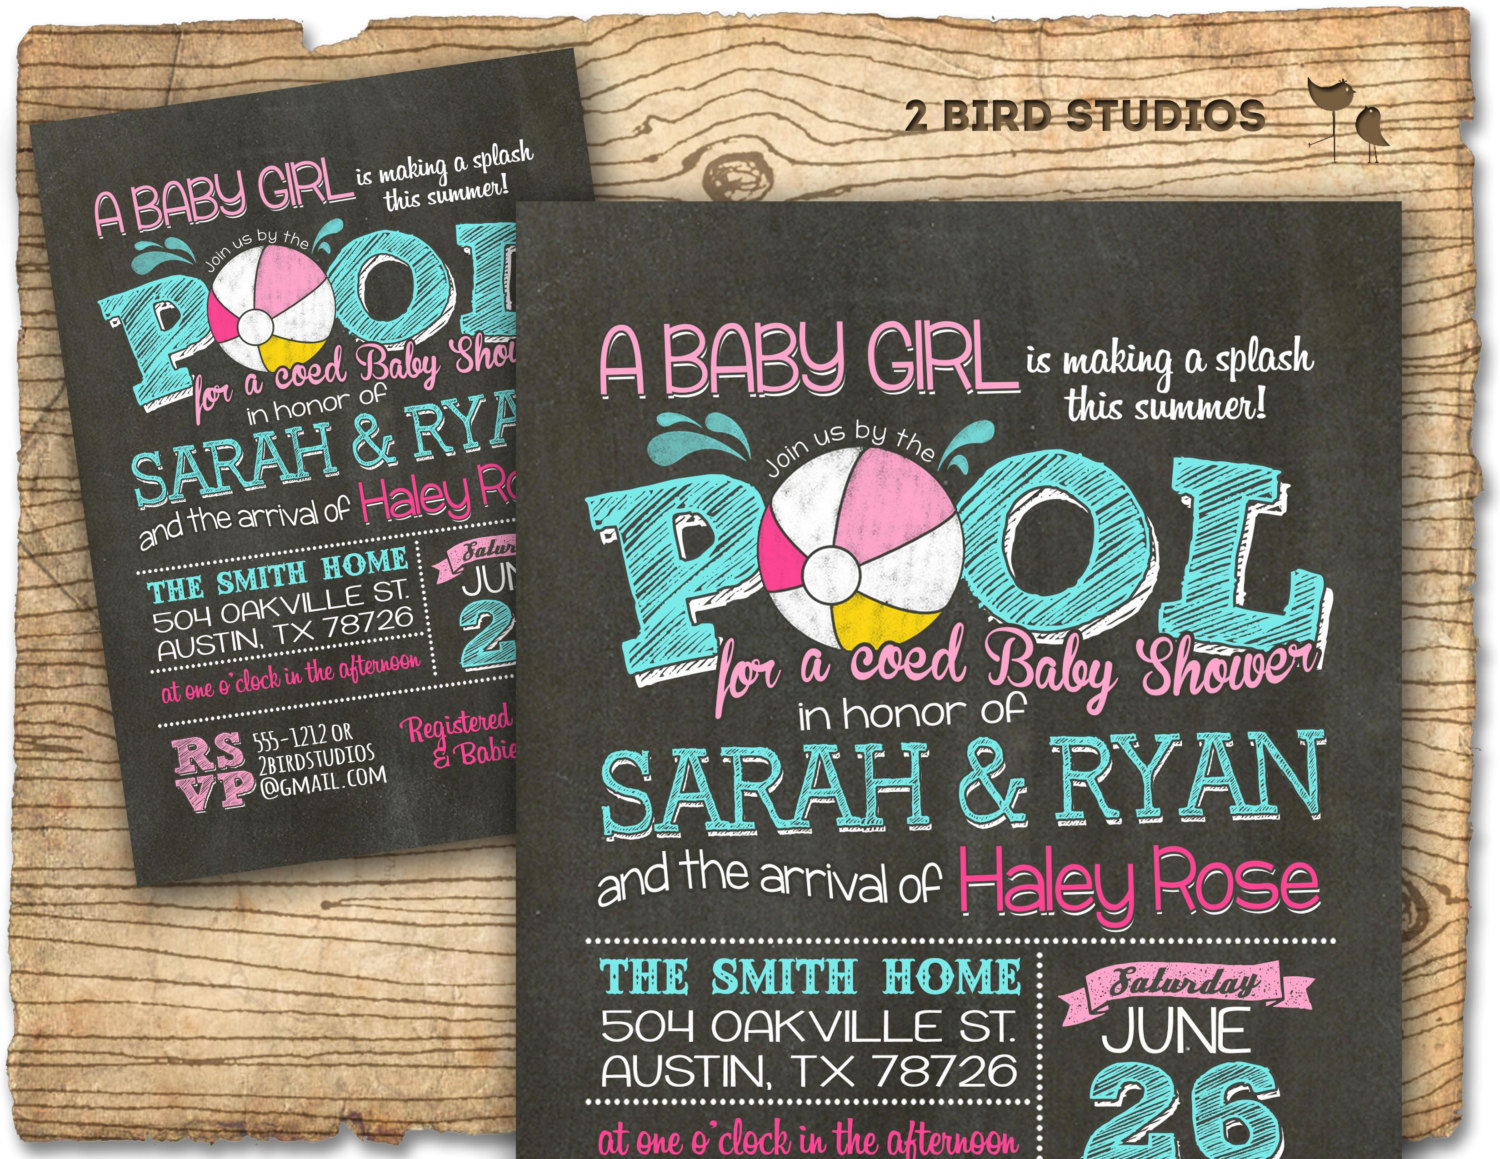 Full Size of Baby Shower:precious Coed Baby Shower Picture Designs Bbq Baby Shower Theme 300x250 Bbq Best Coed Ideas Misaitcom Il Fullxfull 792174549 Izsm Jpg Version 0 Bbq Baby Shower Pool Party Invitation Summer Coed Zoom 1500x1159